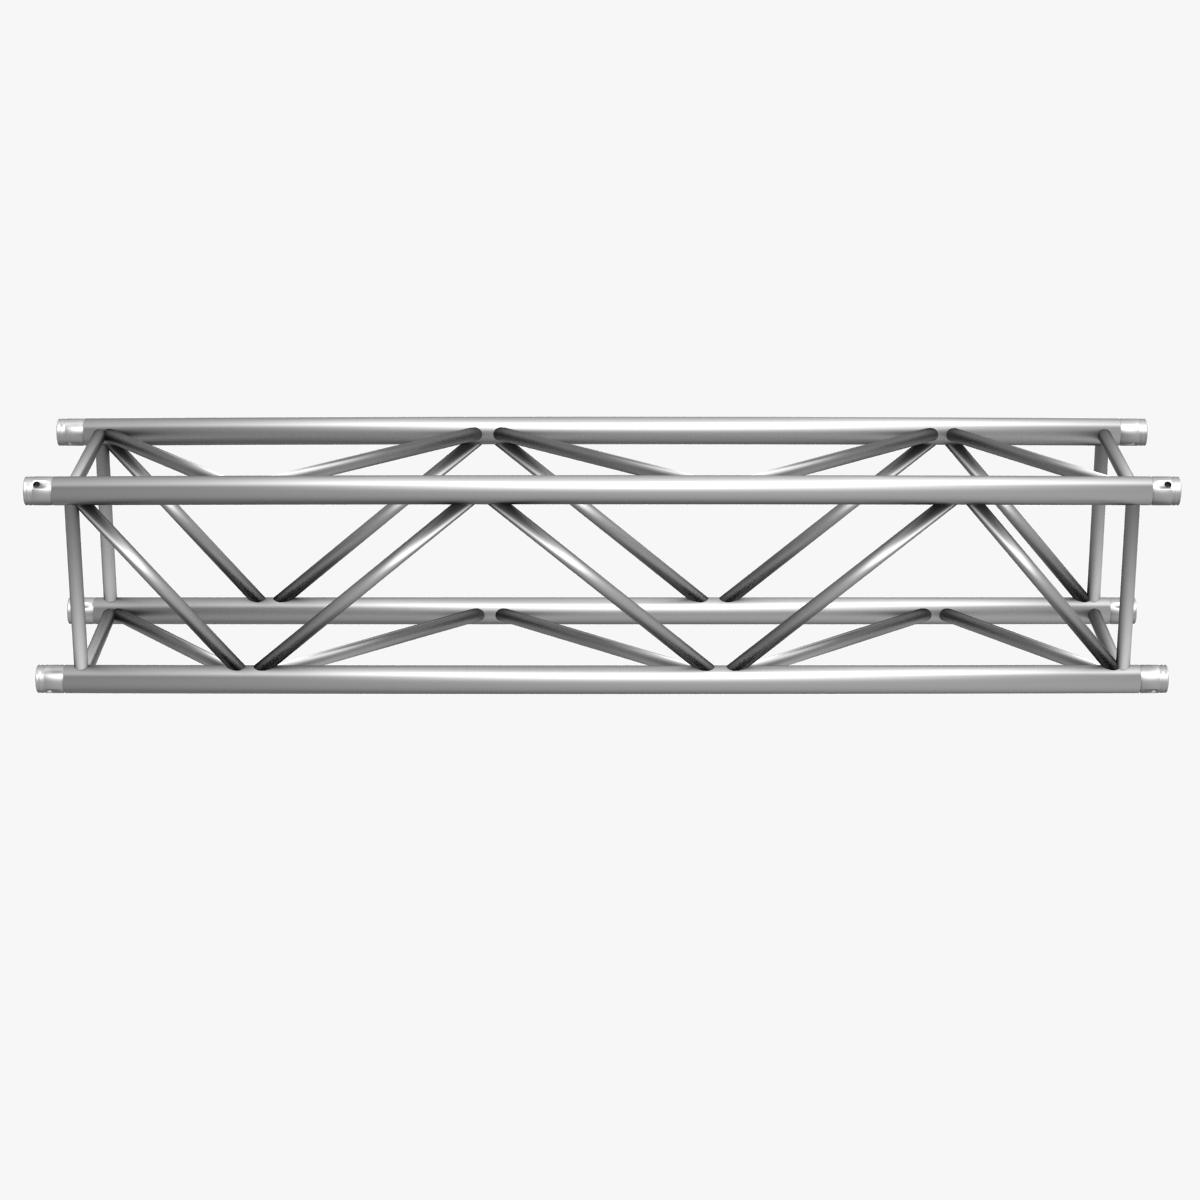 big square truss (collection 10 modular pieces) 3d model 3ds dxf fbx c4d dae  268551